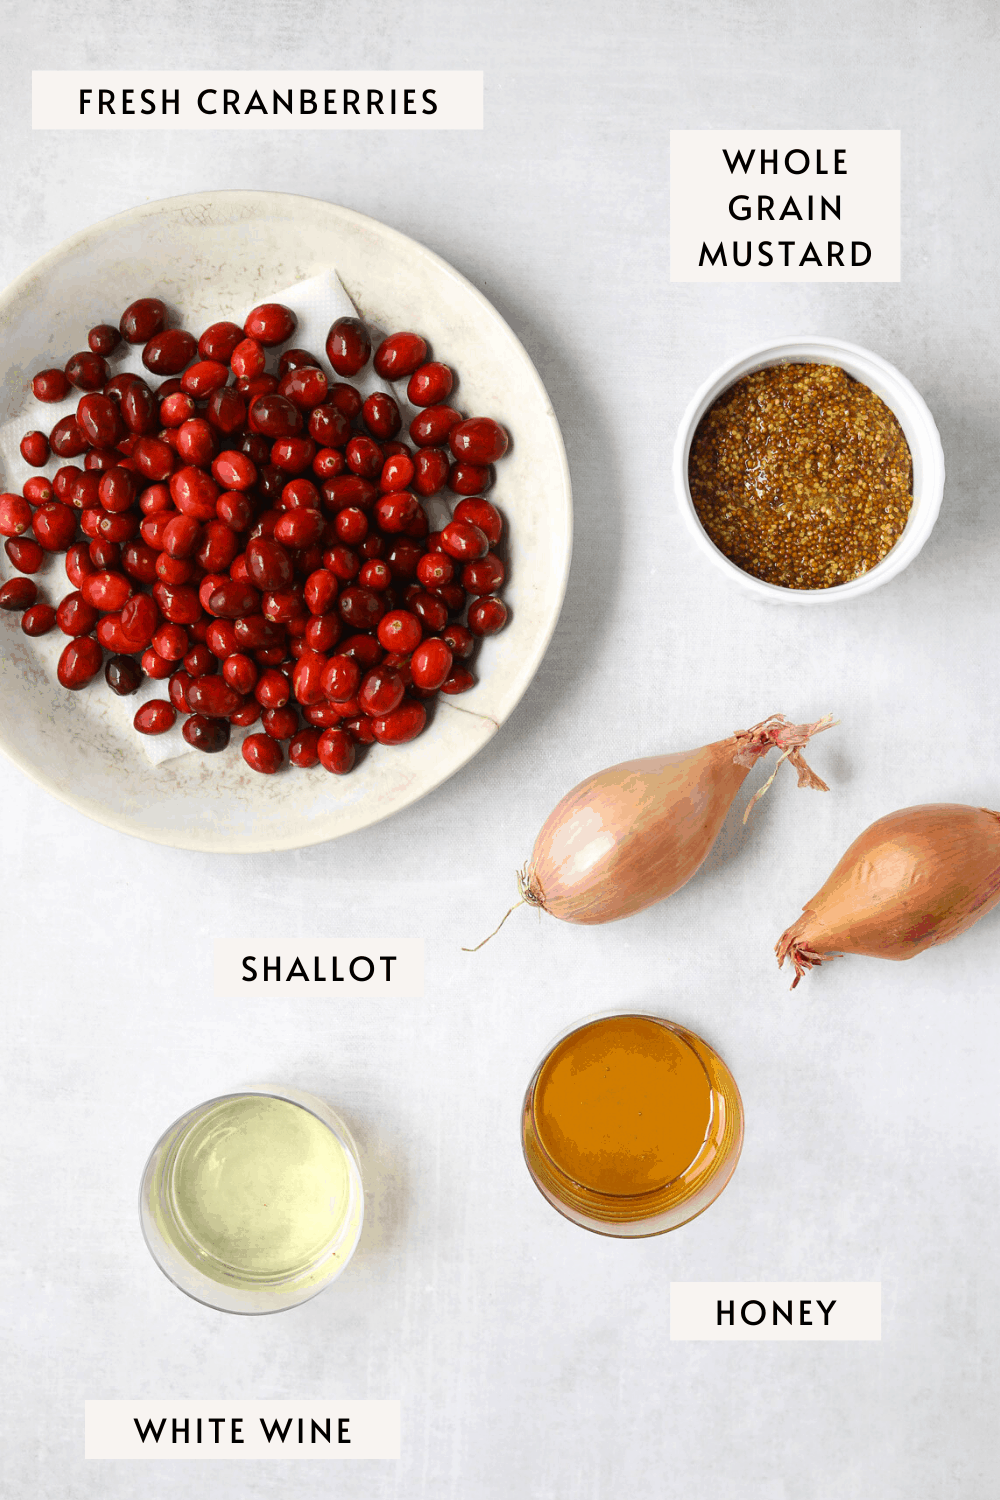 cranberry mustard ingredients; two shallots, a cup of honey, a cup of whole grain mustard a cup of white wine, fresh cranberries